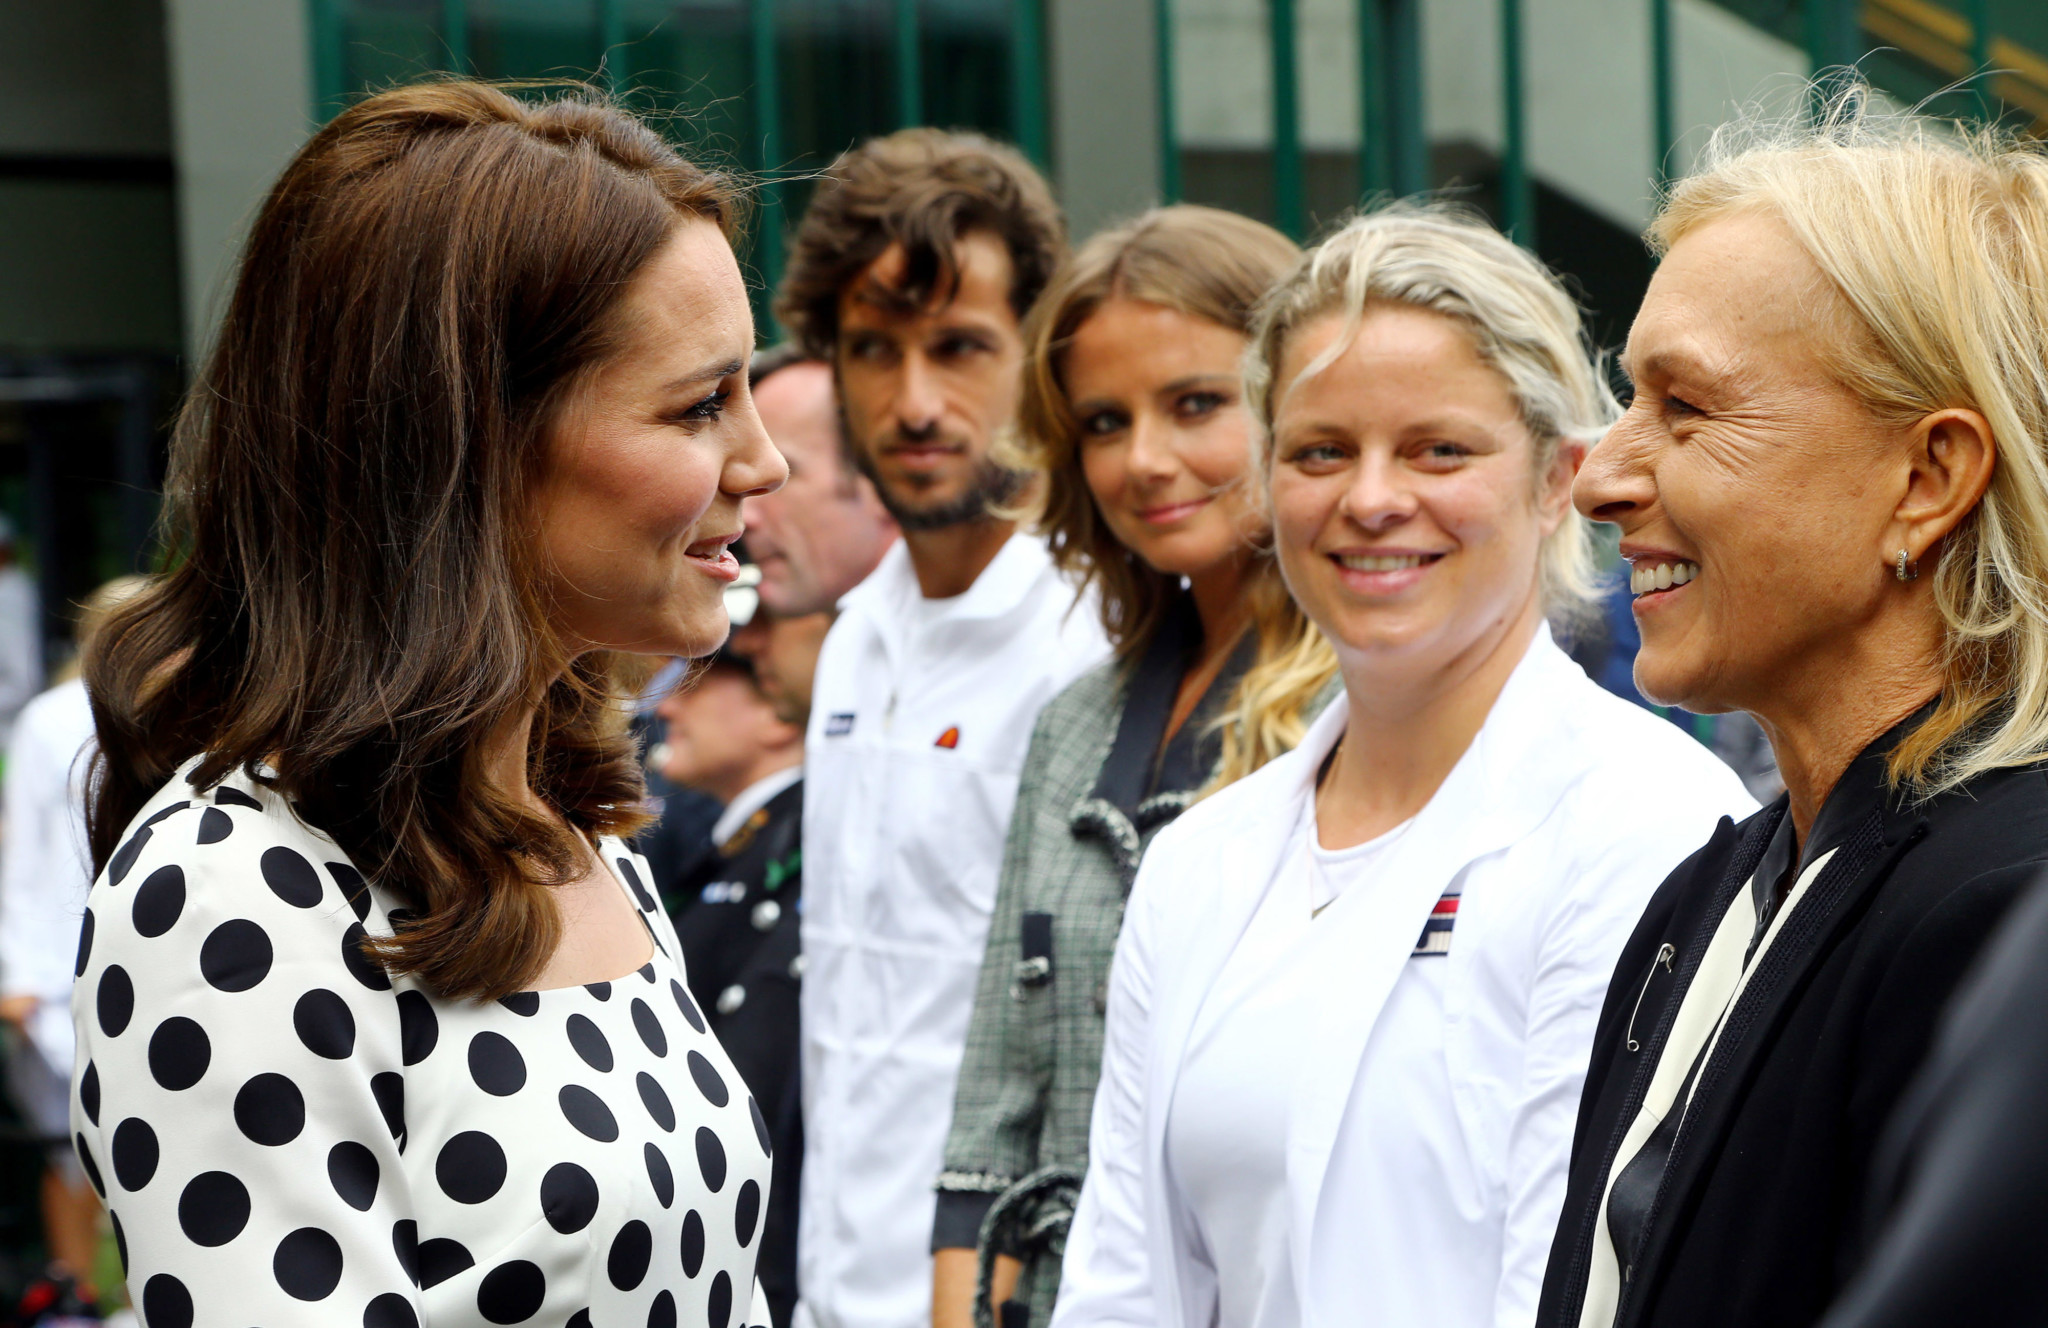 The Duchess of Cambridge Visits The All England Lawn Tennis and Croquet Club